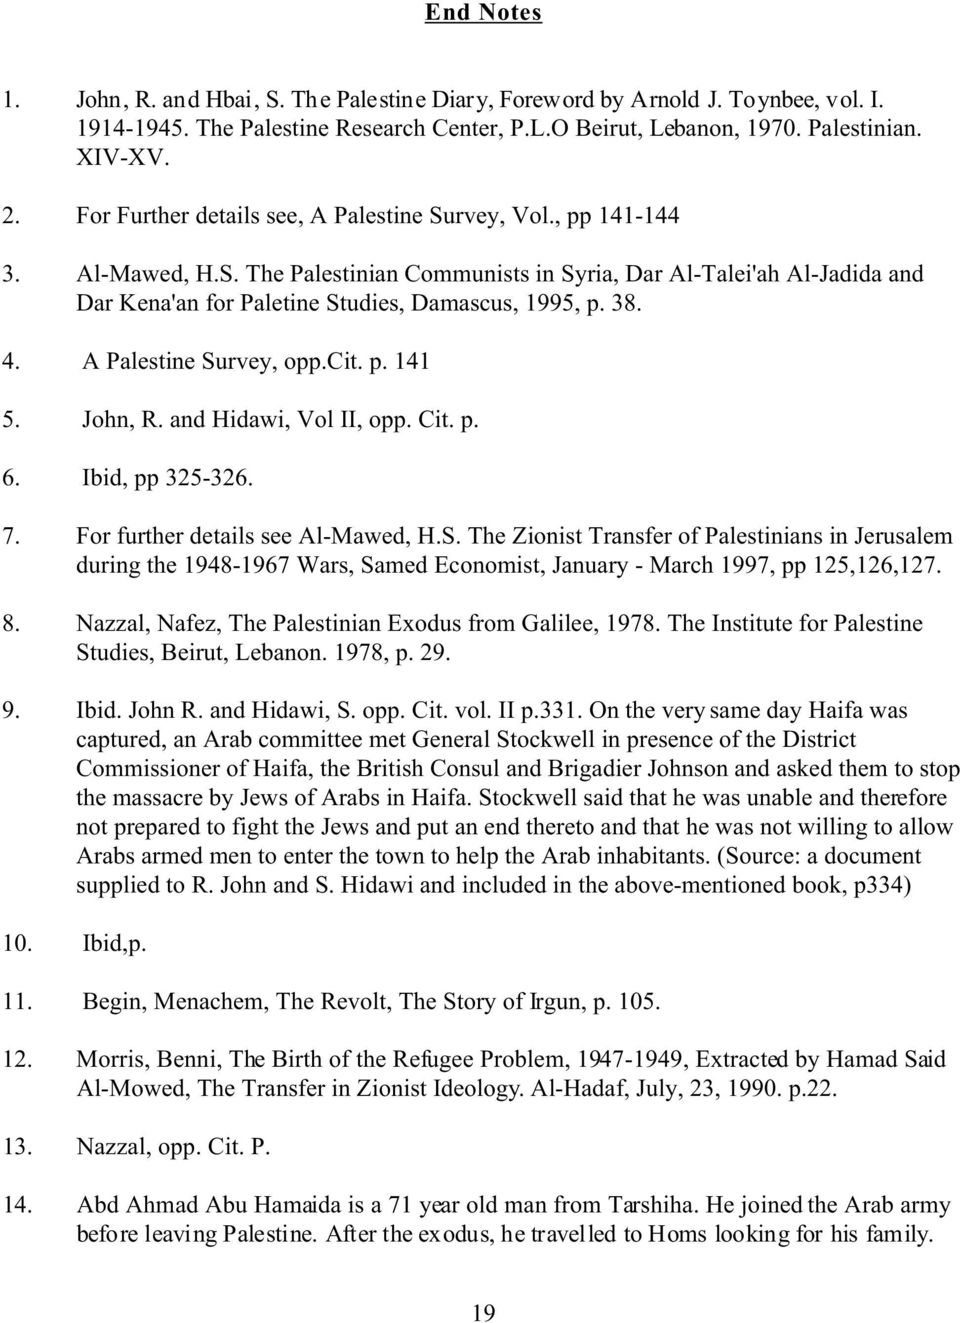 38. 4. A Palestine Survey, opp.cit. p. 141 5. John, R. and Hidawi, Vol II, opp. Cit. p. 6. Ibid, pp 325-326. 7. For further details see Al-Mawed, H.S. The Zionist Transfer of Palestinians in Jerusalem during the 1948-1967 Wars, Samed Economist, January - March 1997, pp 125,126,127.